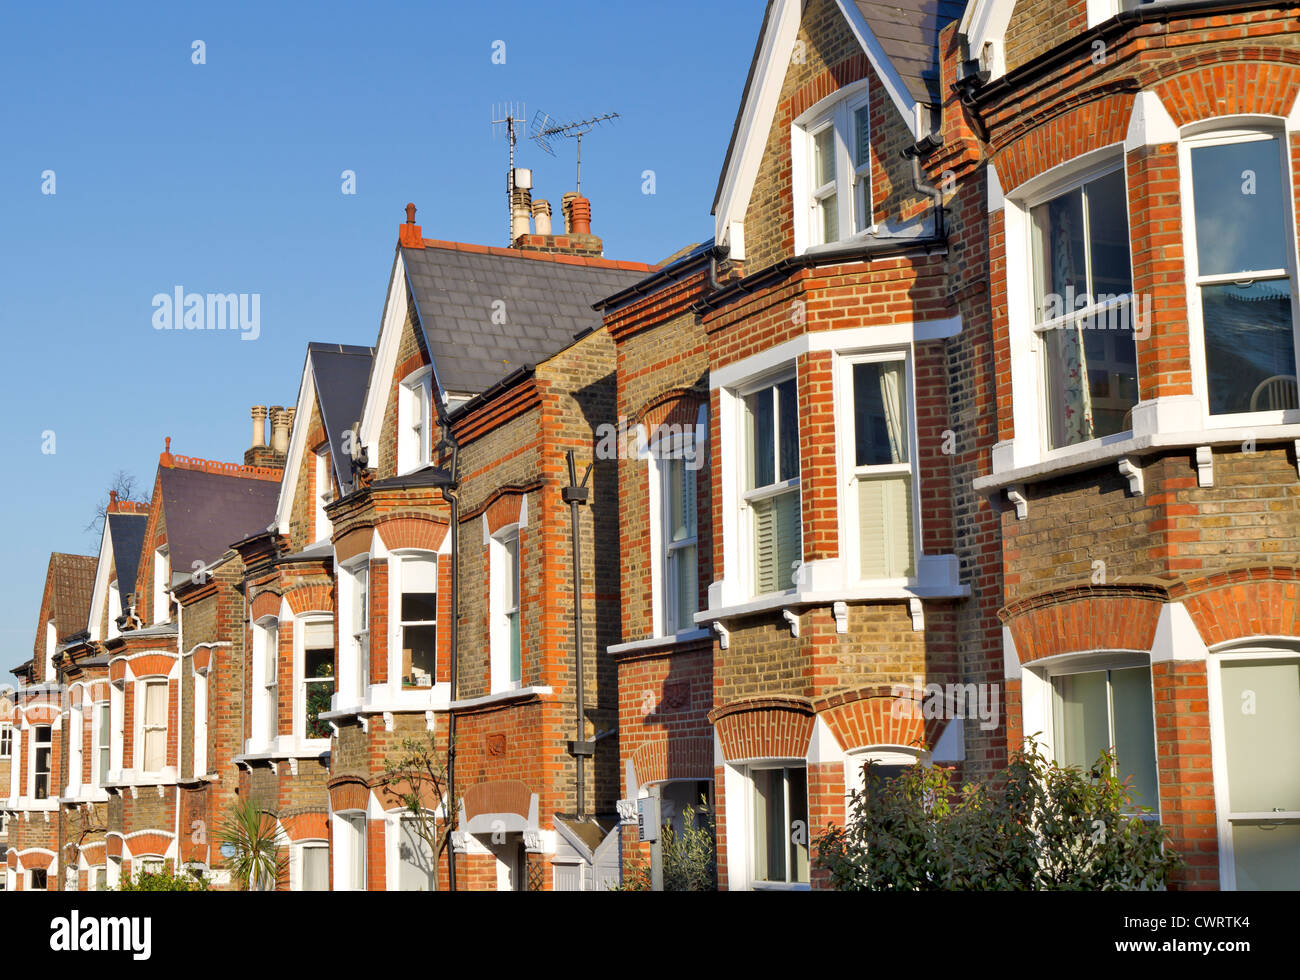 Row of Typical English Houses in Richmond London - Stock Image